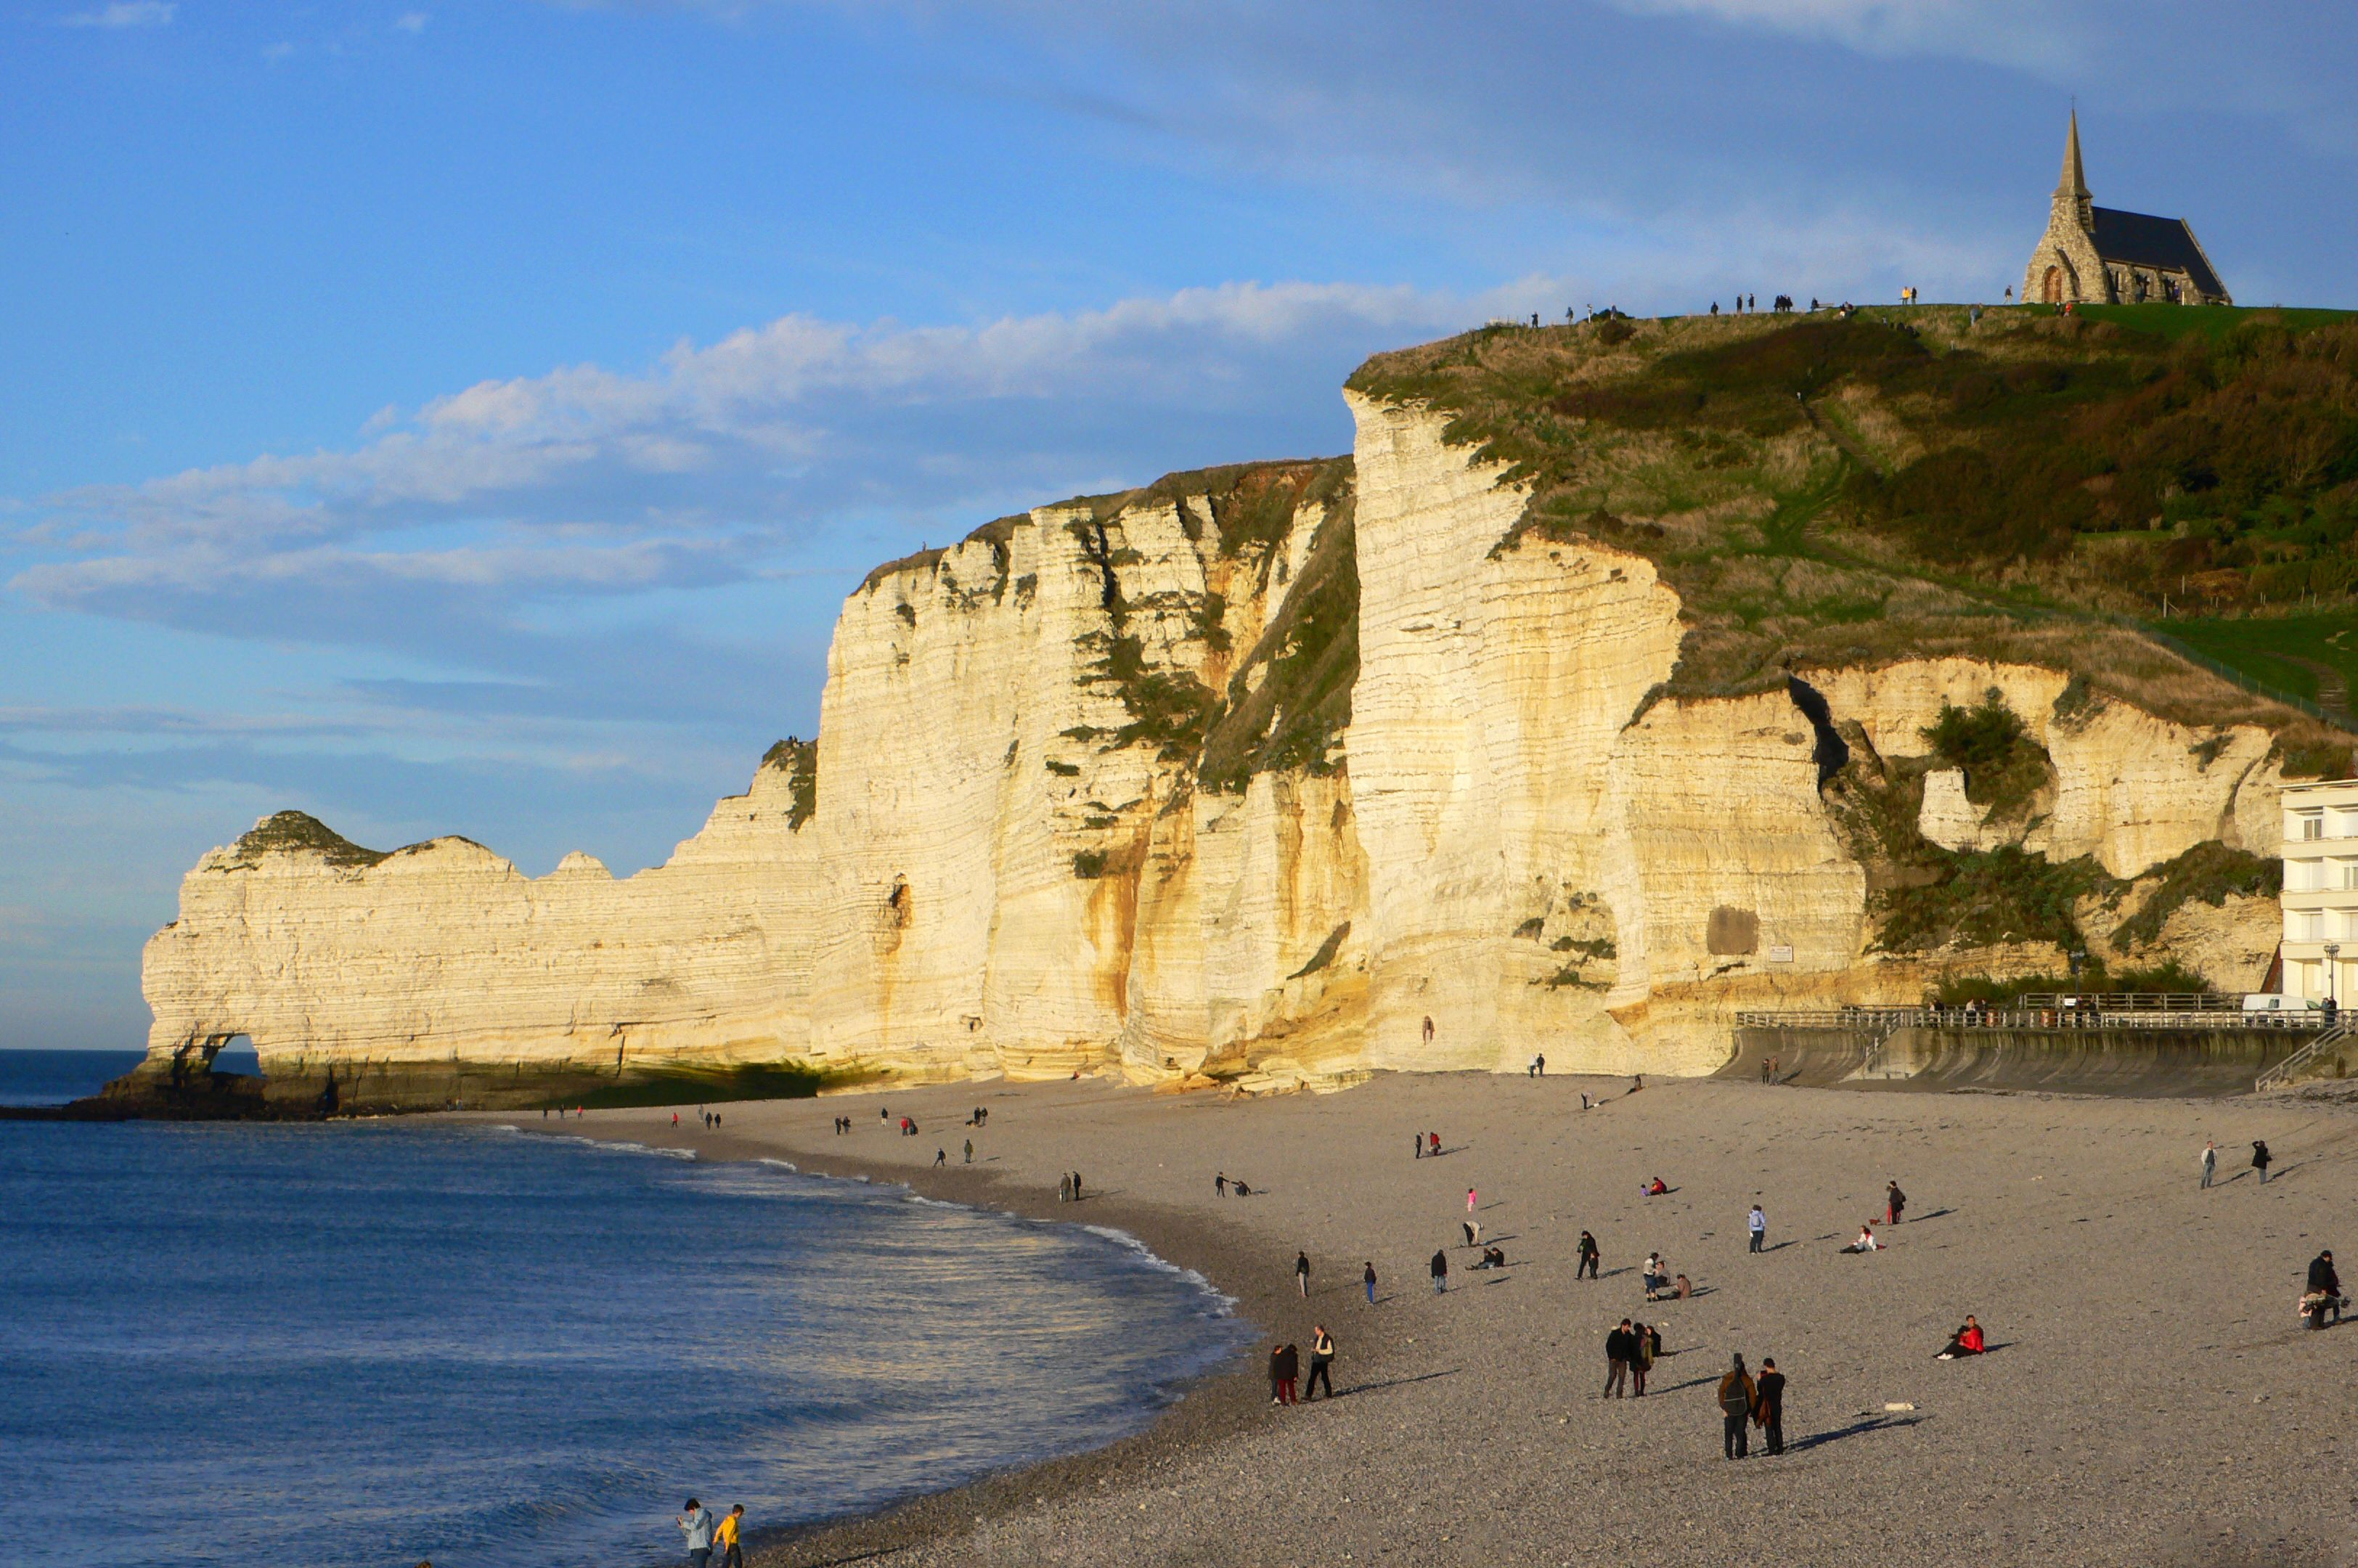 The white face of the cliffs at Étretat, France on a sunny day